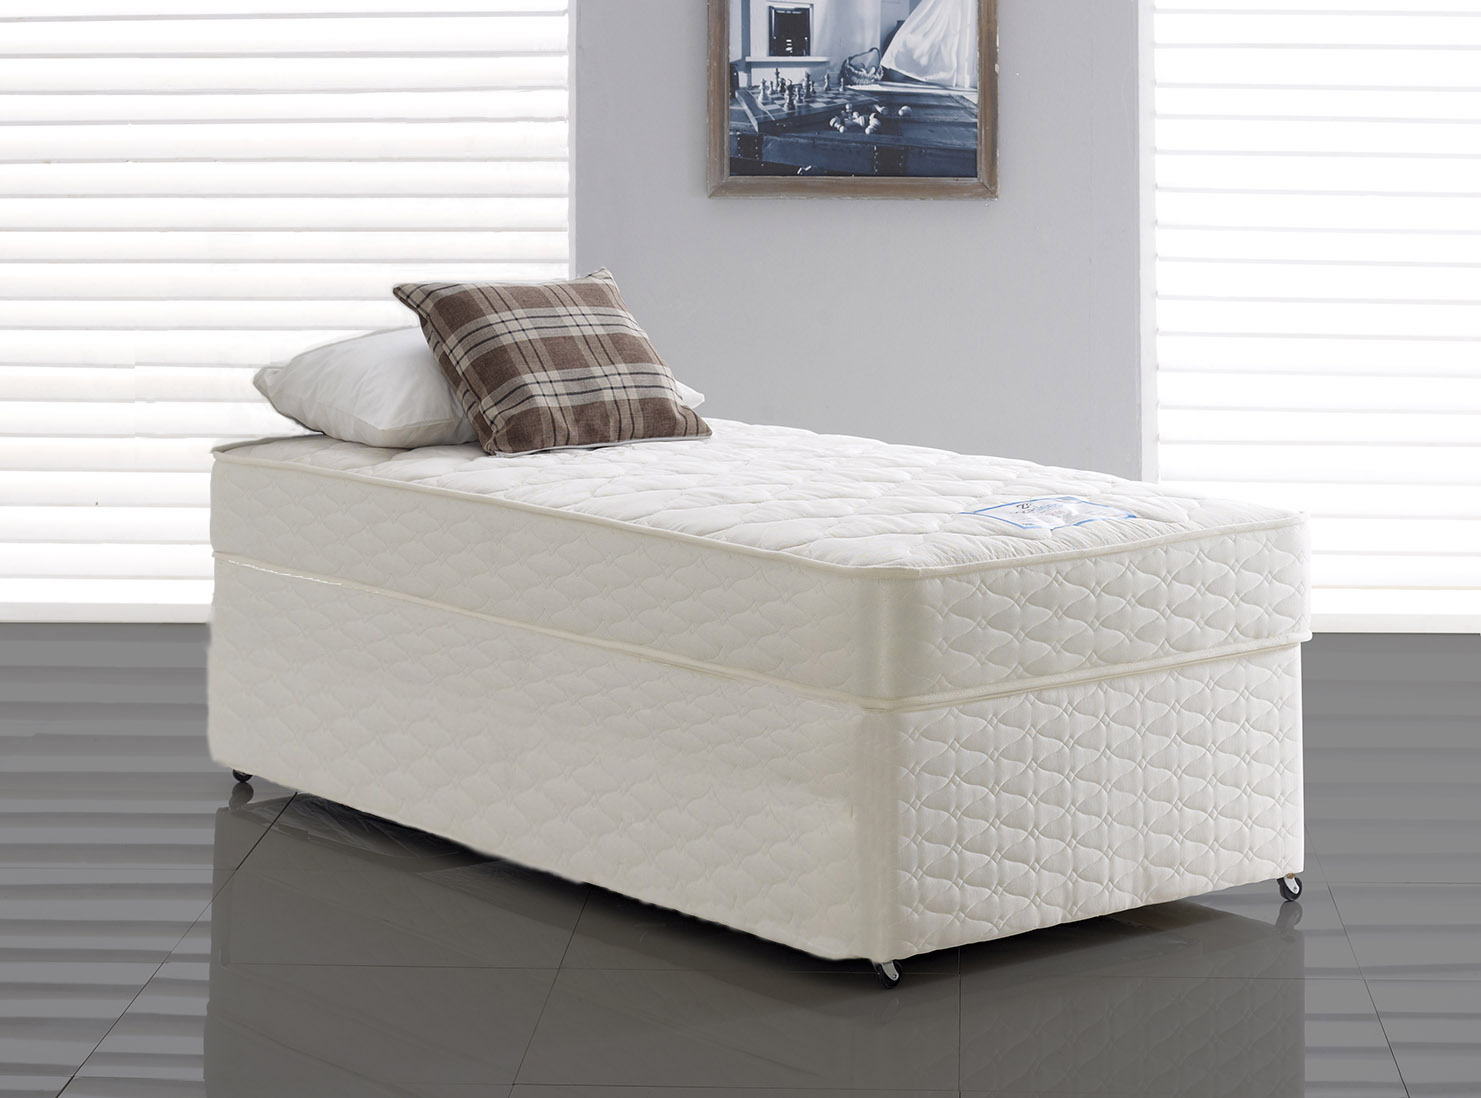 Verona Bed Base - King